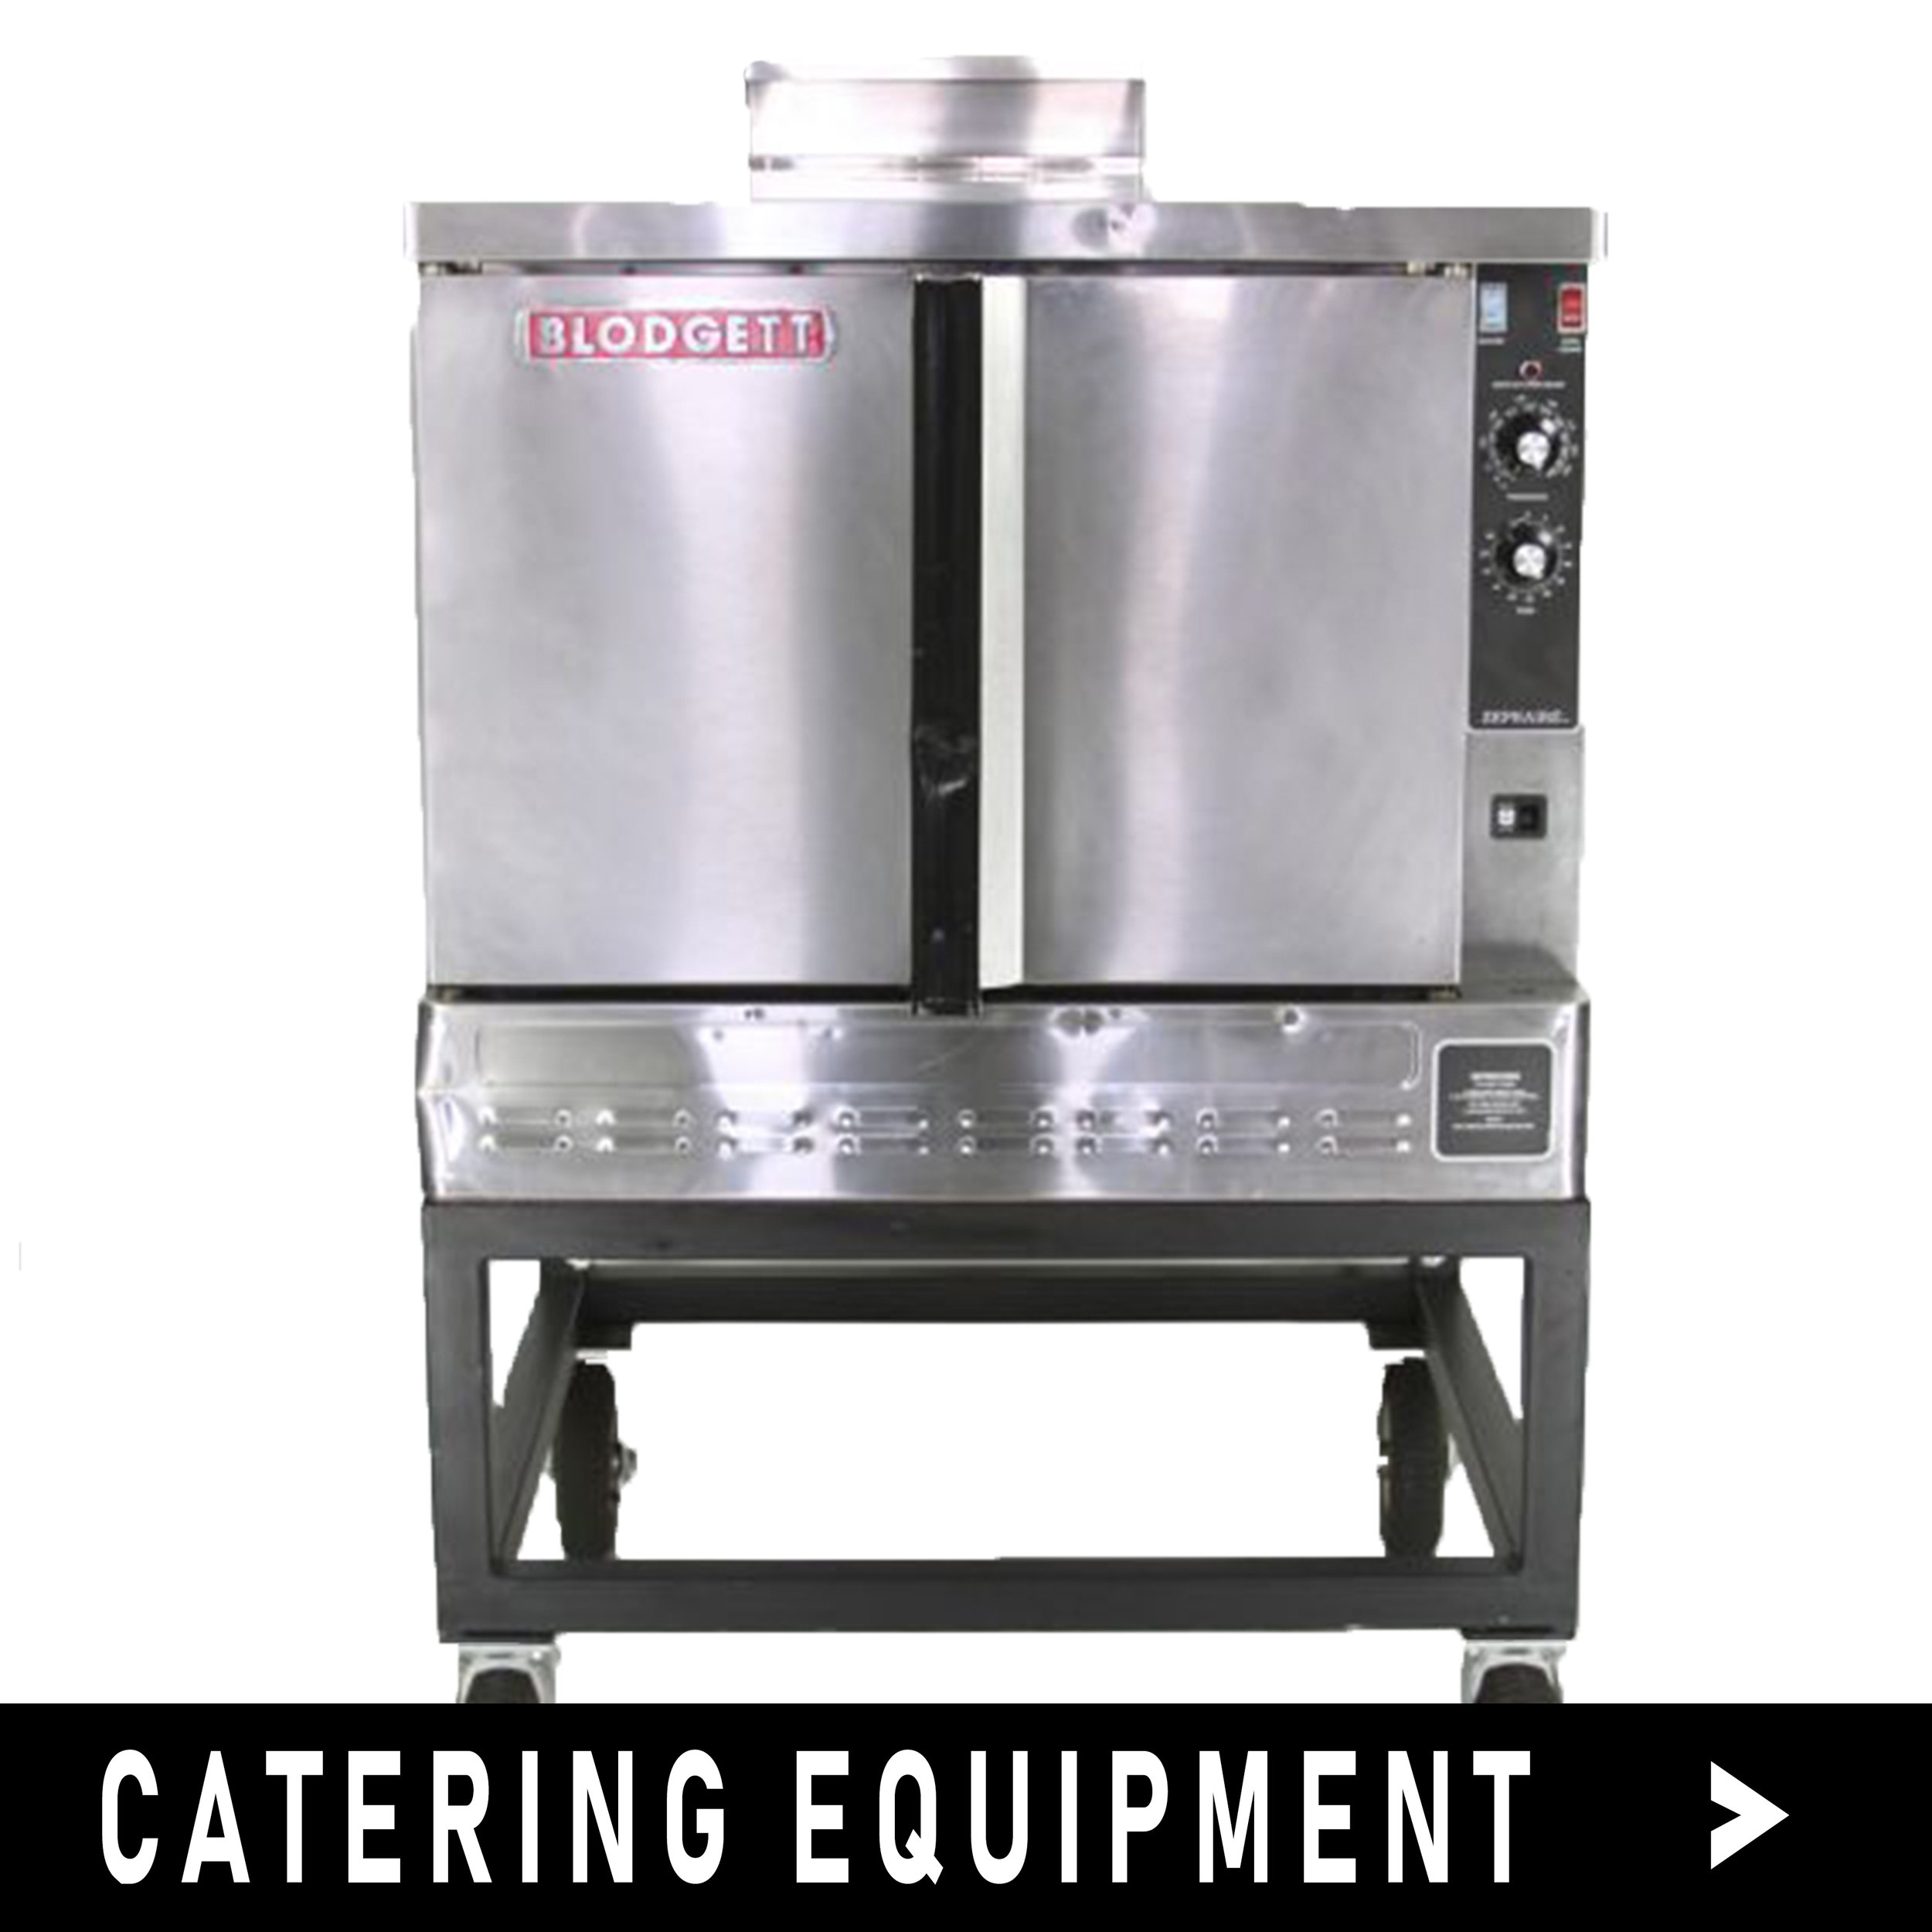 CATERING EQUIPMENT.jpg